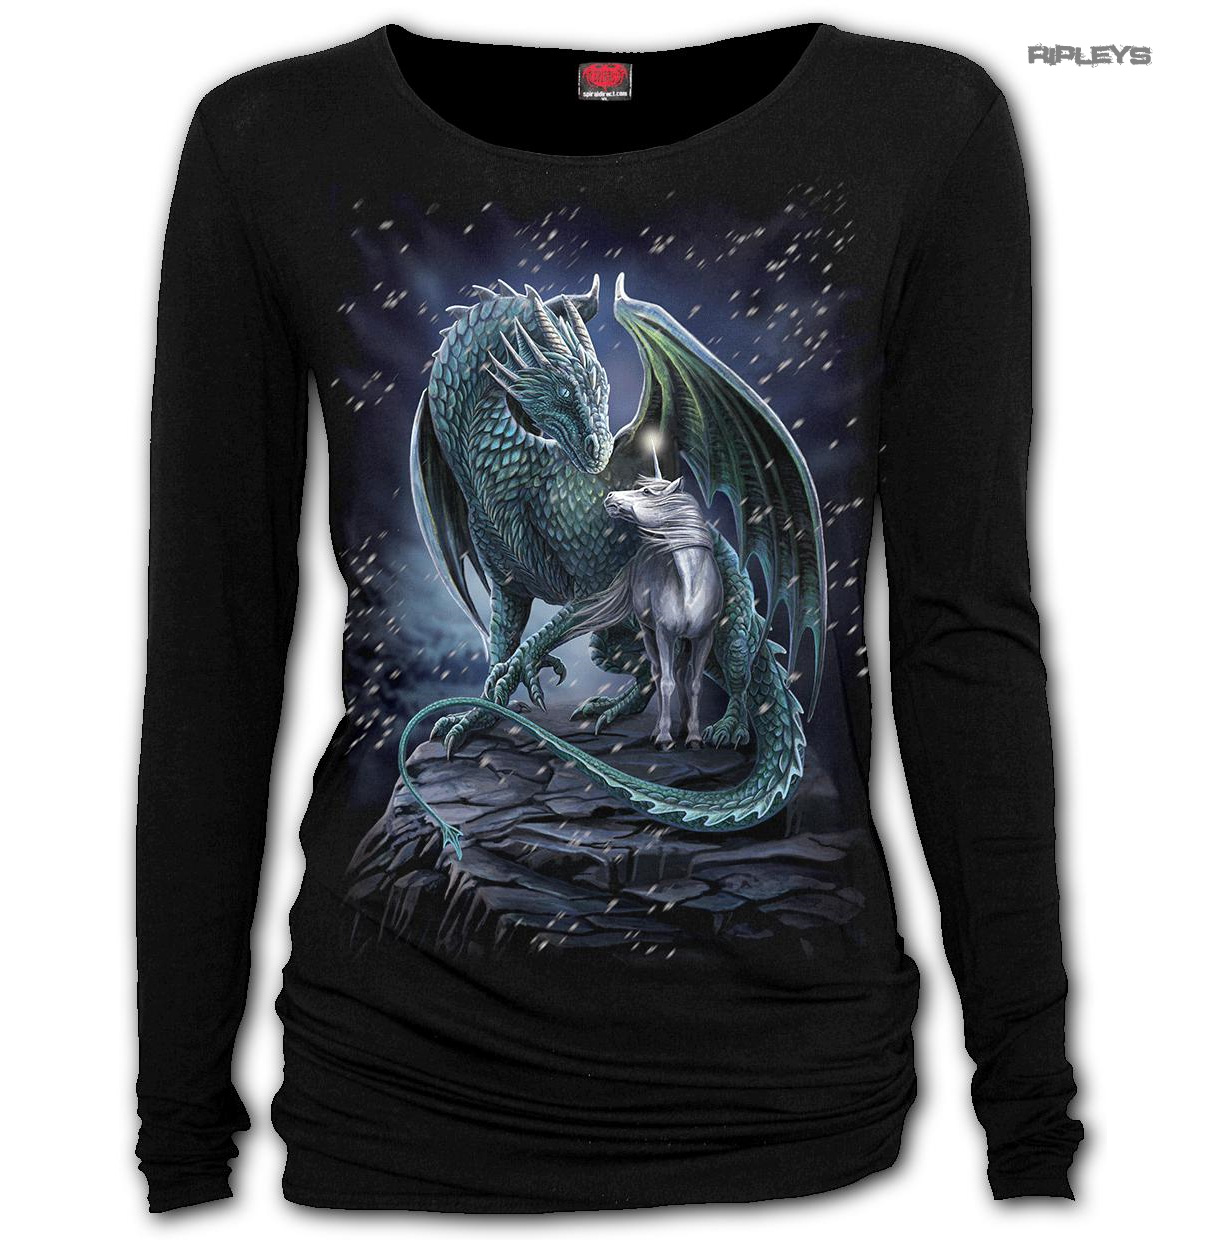 Spiral-Ladies-Gothic-Unicorn-Dragon-PROTECTOR-OF-MAGIC-L-Sleeve-Top-All-Sizes thumbnail 6